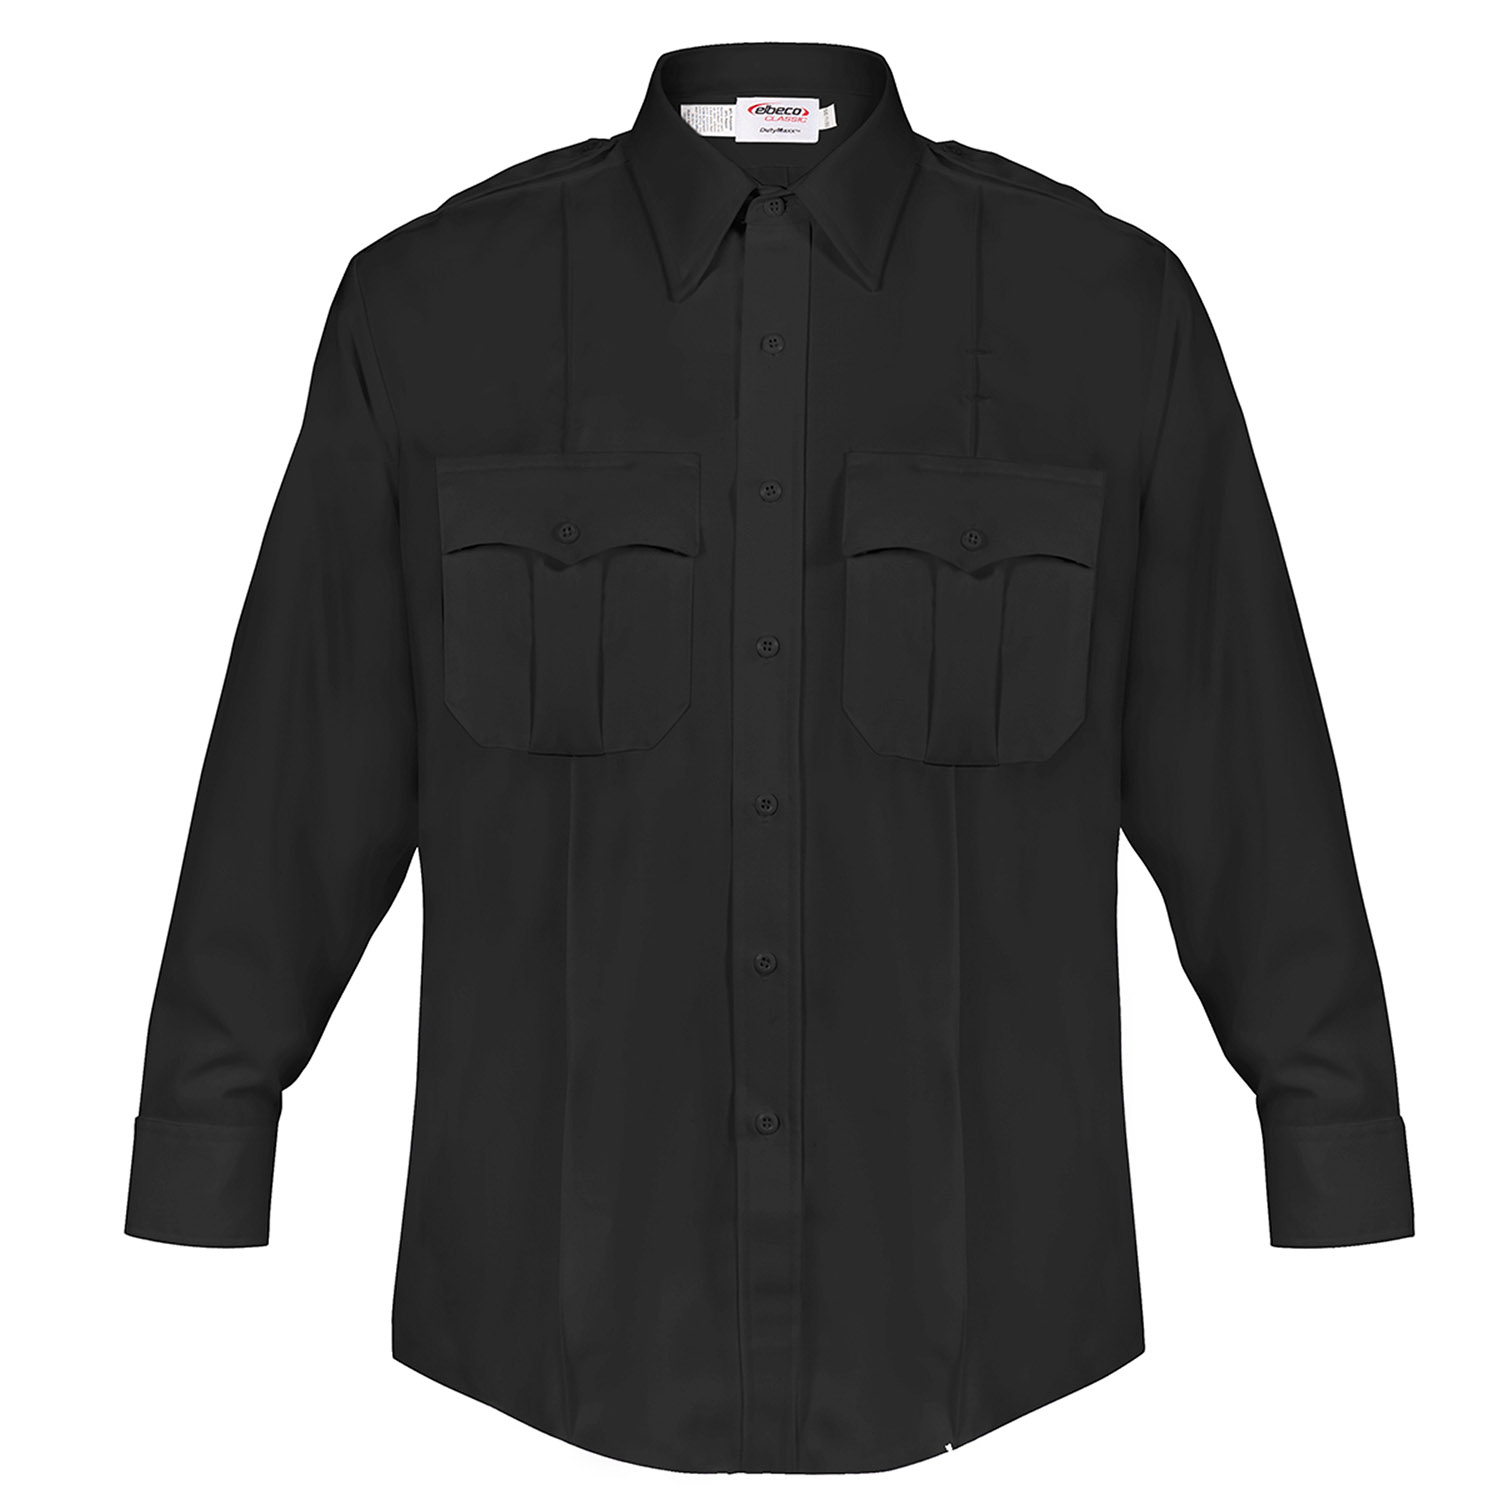 Elbeco Classic Duty Maxx Men's Long-Sleeve Shirt